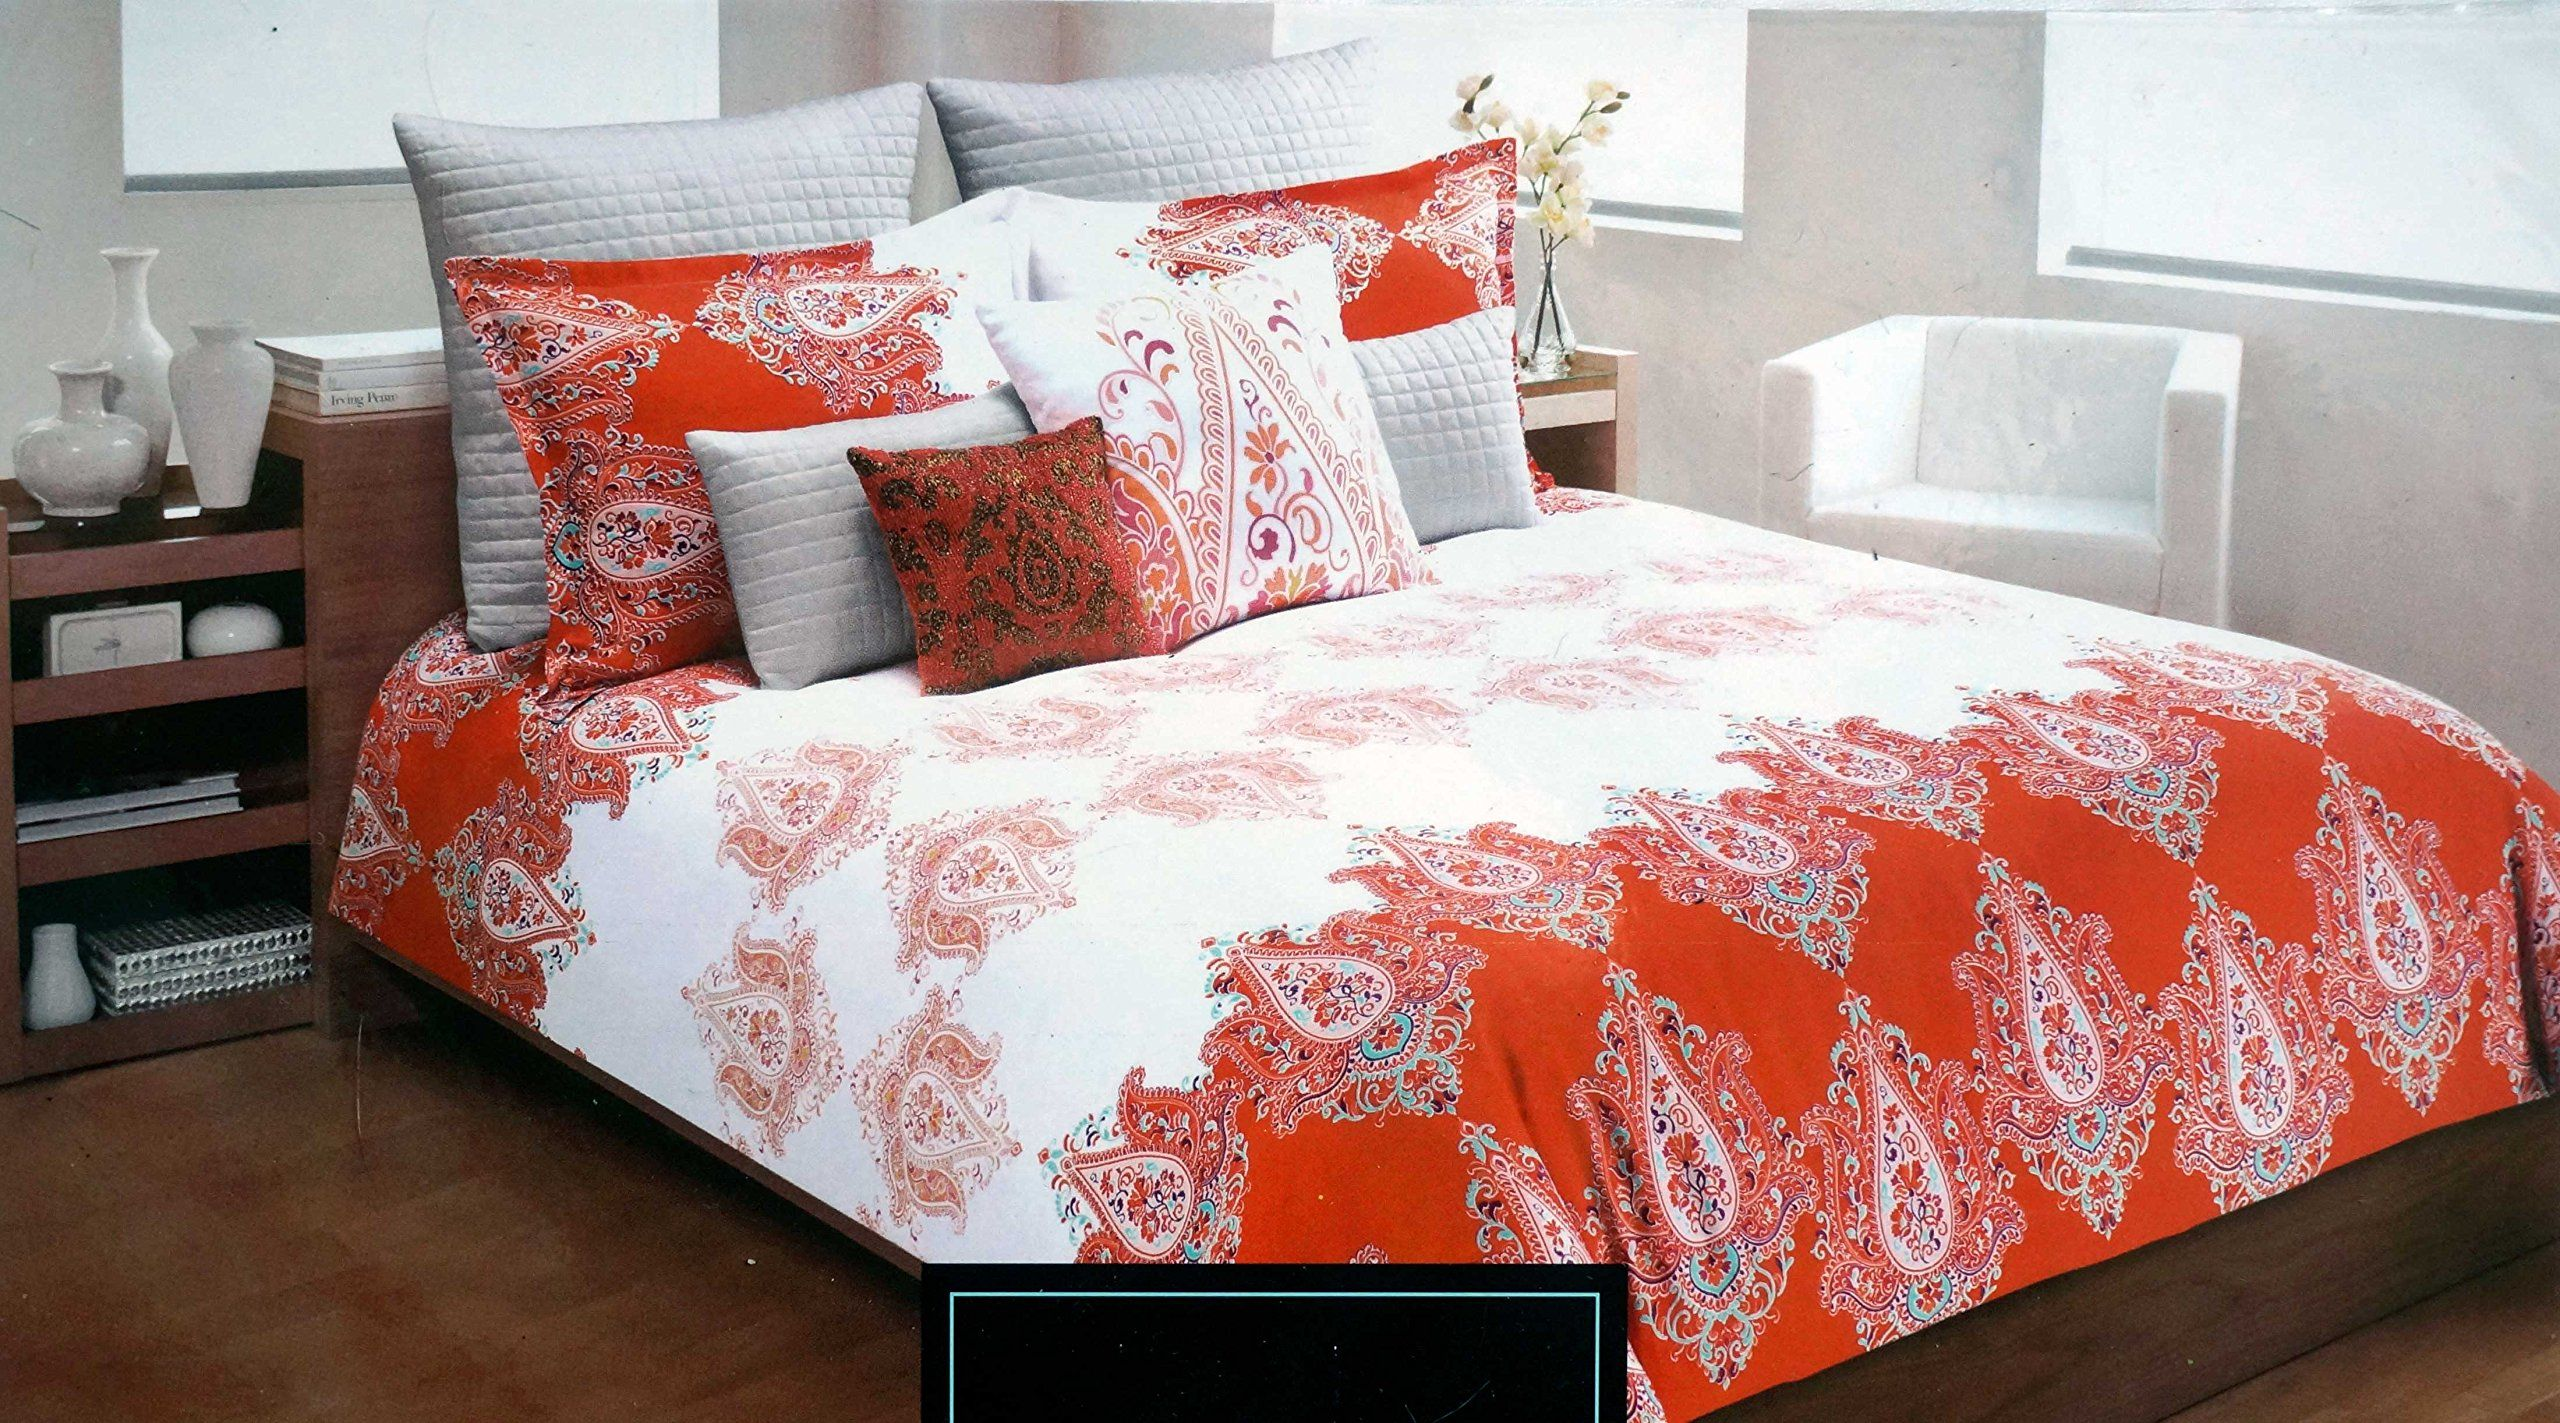 Cynthia Rowley Bedding 3pc FULL / QUEEN Duvet Cover Set Orange And Teal  Paisley Medallions On An Orange And White Background